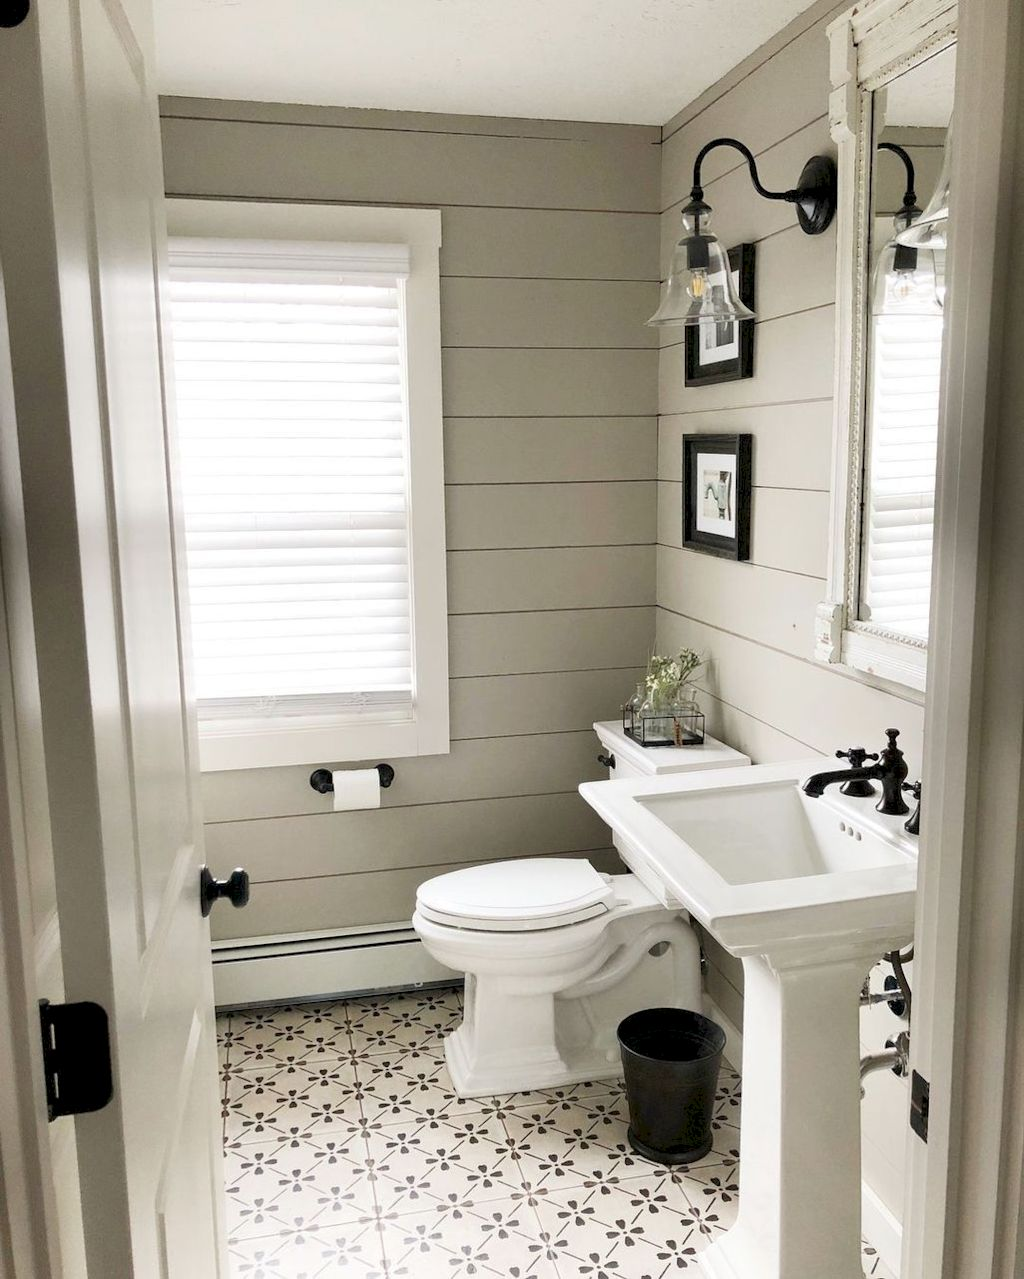 Beautiful bathroom update with eclectic patterned tiles and ethnic rugs very efficient to improve bathroom floor design Image 8